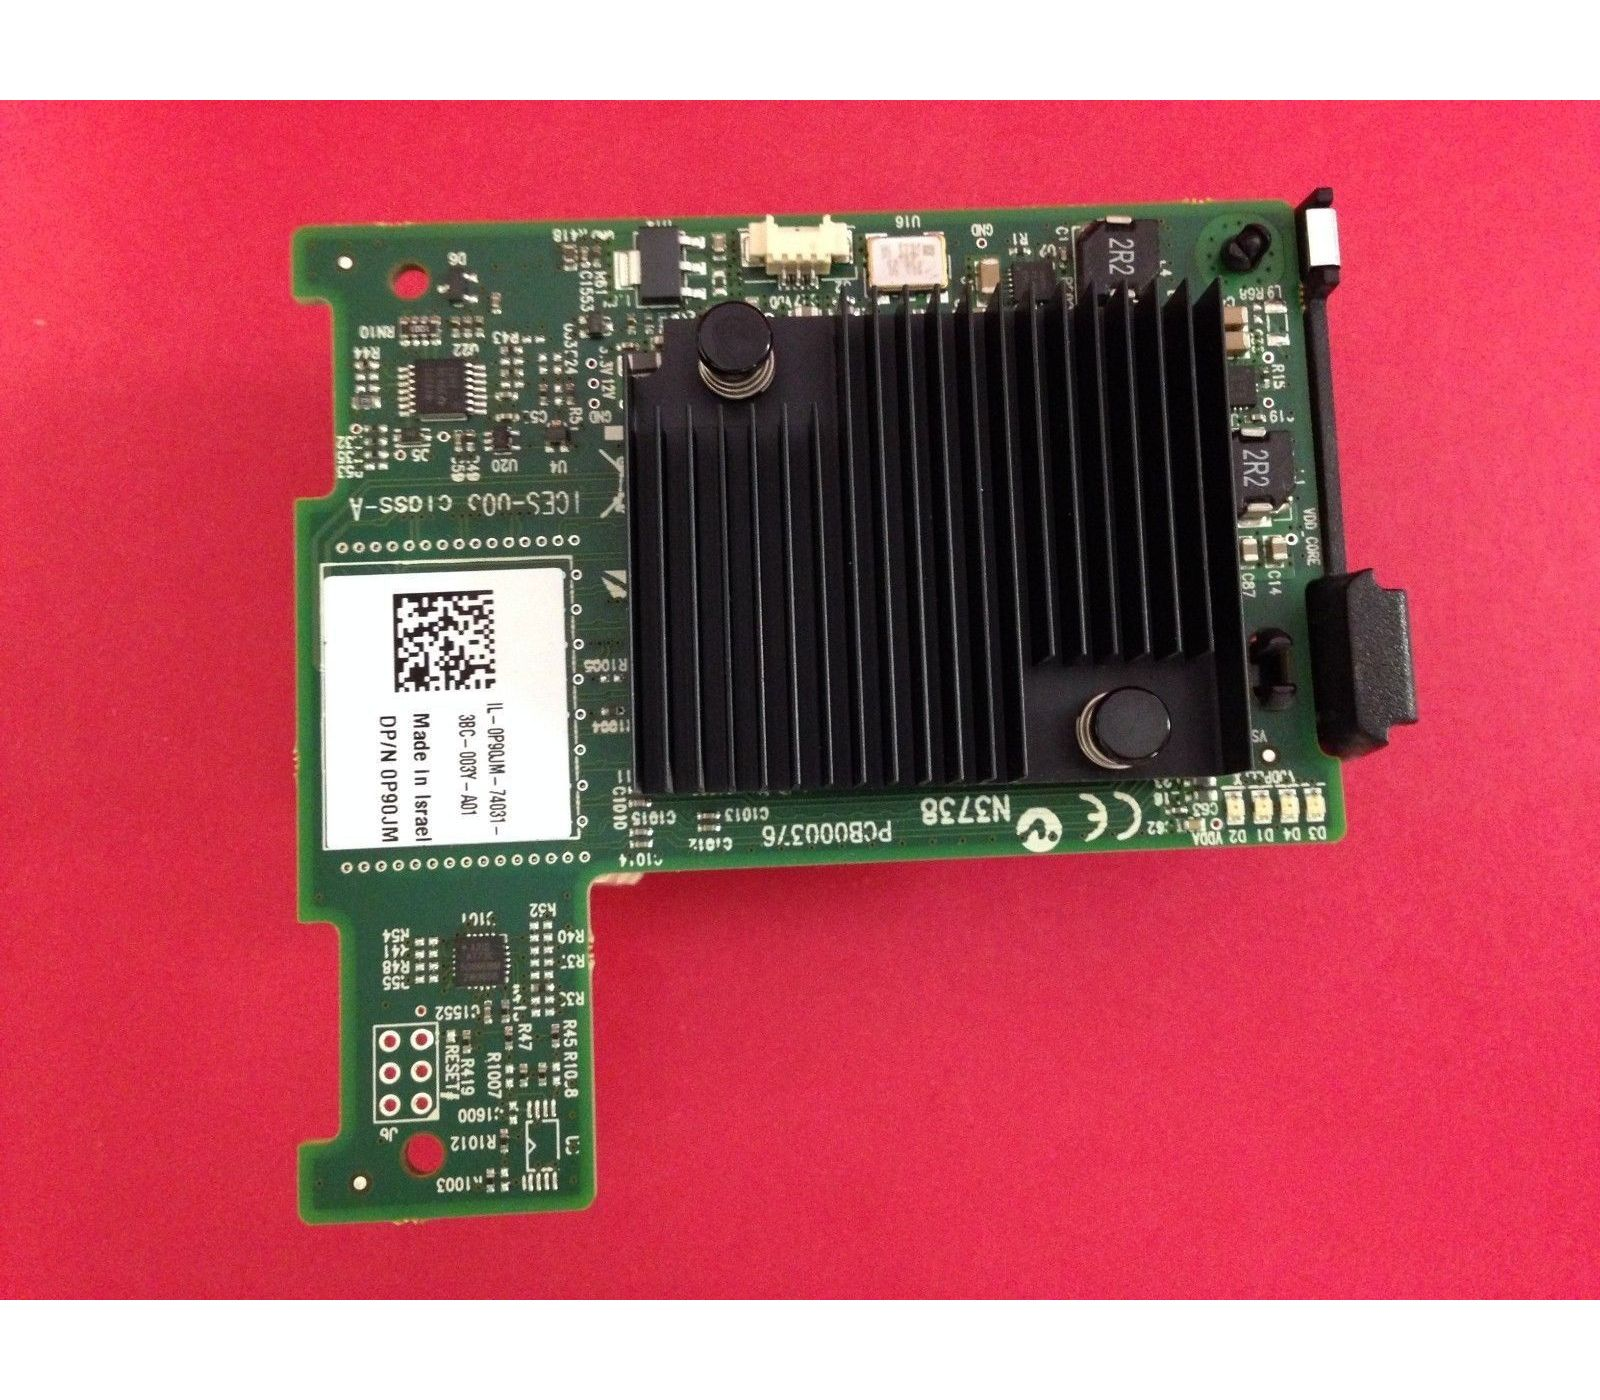 P90JM Dell Connectx-3 Mcx380a Infiniband 40GB/S Fdr10 Mezzanine Network  Card Suports Pci-E 3 0 X8 Gt/S For Poweredge M620/M915  Refurbished